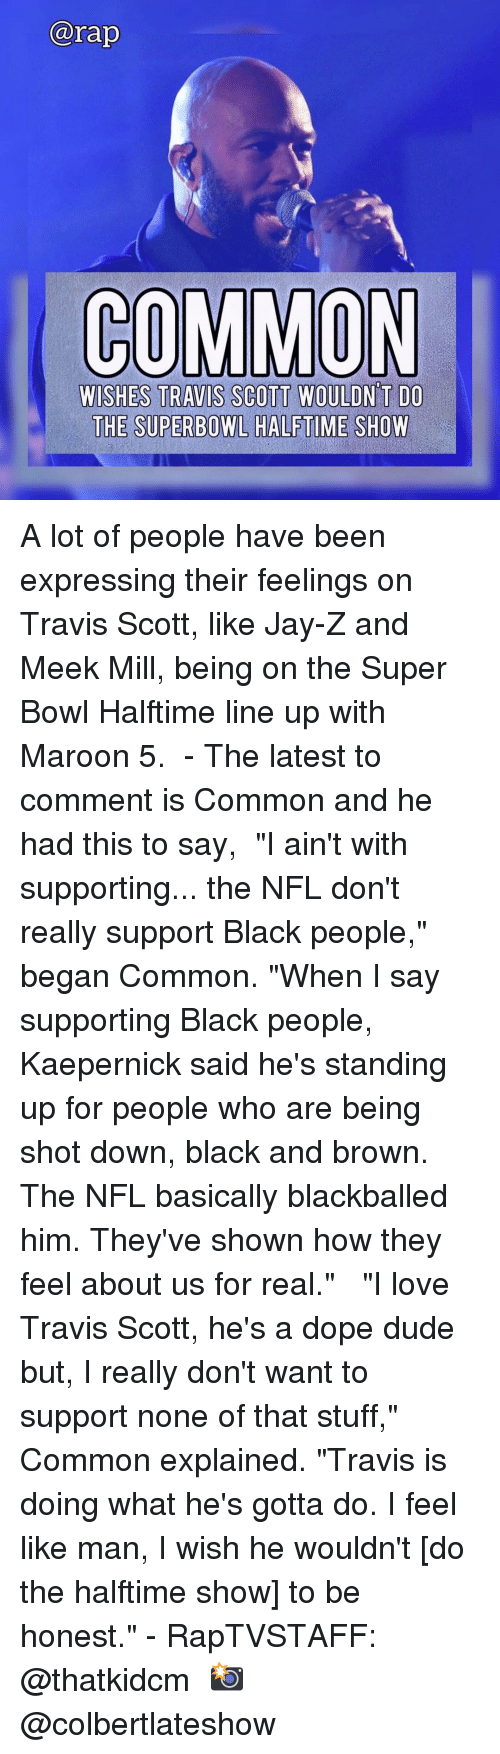 "Meek Mill: arap  COMMON  WISHES TRAVIS SCOTT WOULDN T DO  THE SUPERBOWL HALFTIME SHOW A lot of people have been expressing their feelings on Travis Scott, like Jay-Z and Meek Mill, being on the Super Bowl Halftime line up with Maroon 5. ⁣ -⁣ The latest to comment is Common and he had this to say,⁣ ⁣ ""I ain't with supporting... the NFL don't really support Black people,"" began Common. ""When I say supporting Black people, Kaepernick said he's standing up for people who are being shot down, black and brown. The NFL basically blackballed him. They've shown how they feel about us for real."" ⁣ ⁣ ""I love Travis Scott, he's a dope dude but, I really don't want to support none of that stuff,"" Common explained. ""Travis is doing what he's gotta do. I feel like man, I wish he wouldn't [do the halftime show] to be honest.""⁣ -⁣ RapTVSTAFF: @thatkidcm⁣ 📸 @colbertlateshow⁣"